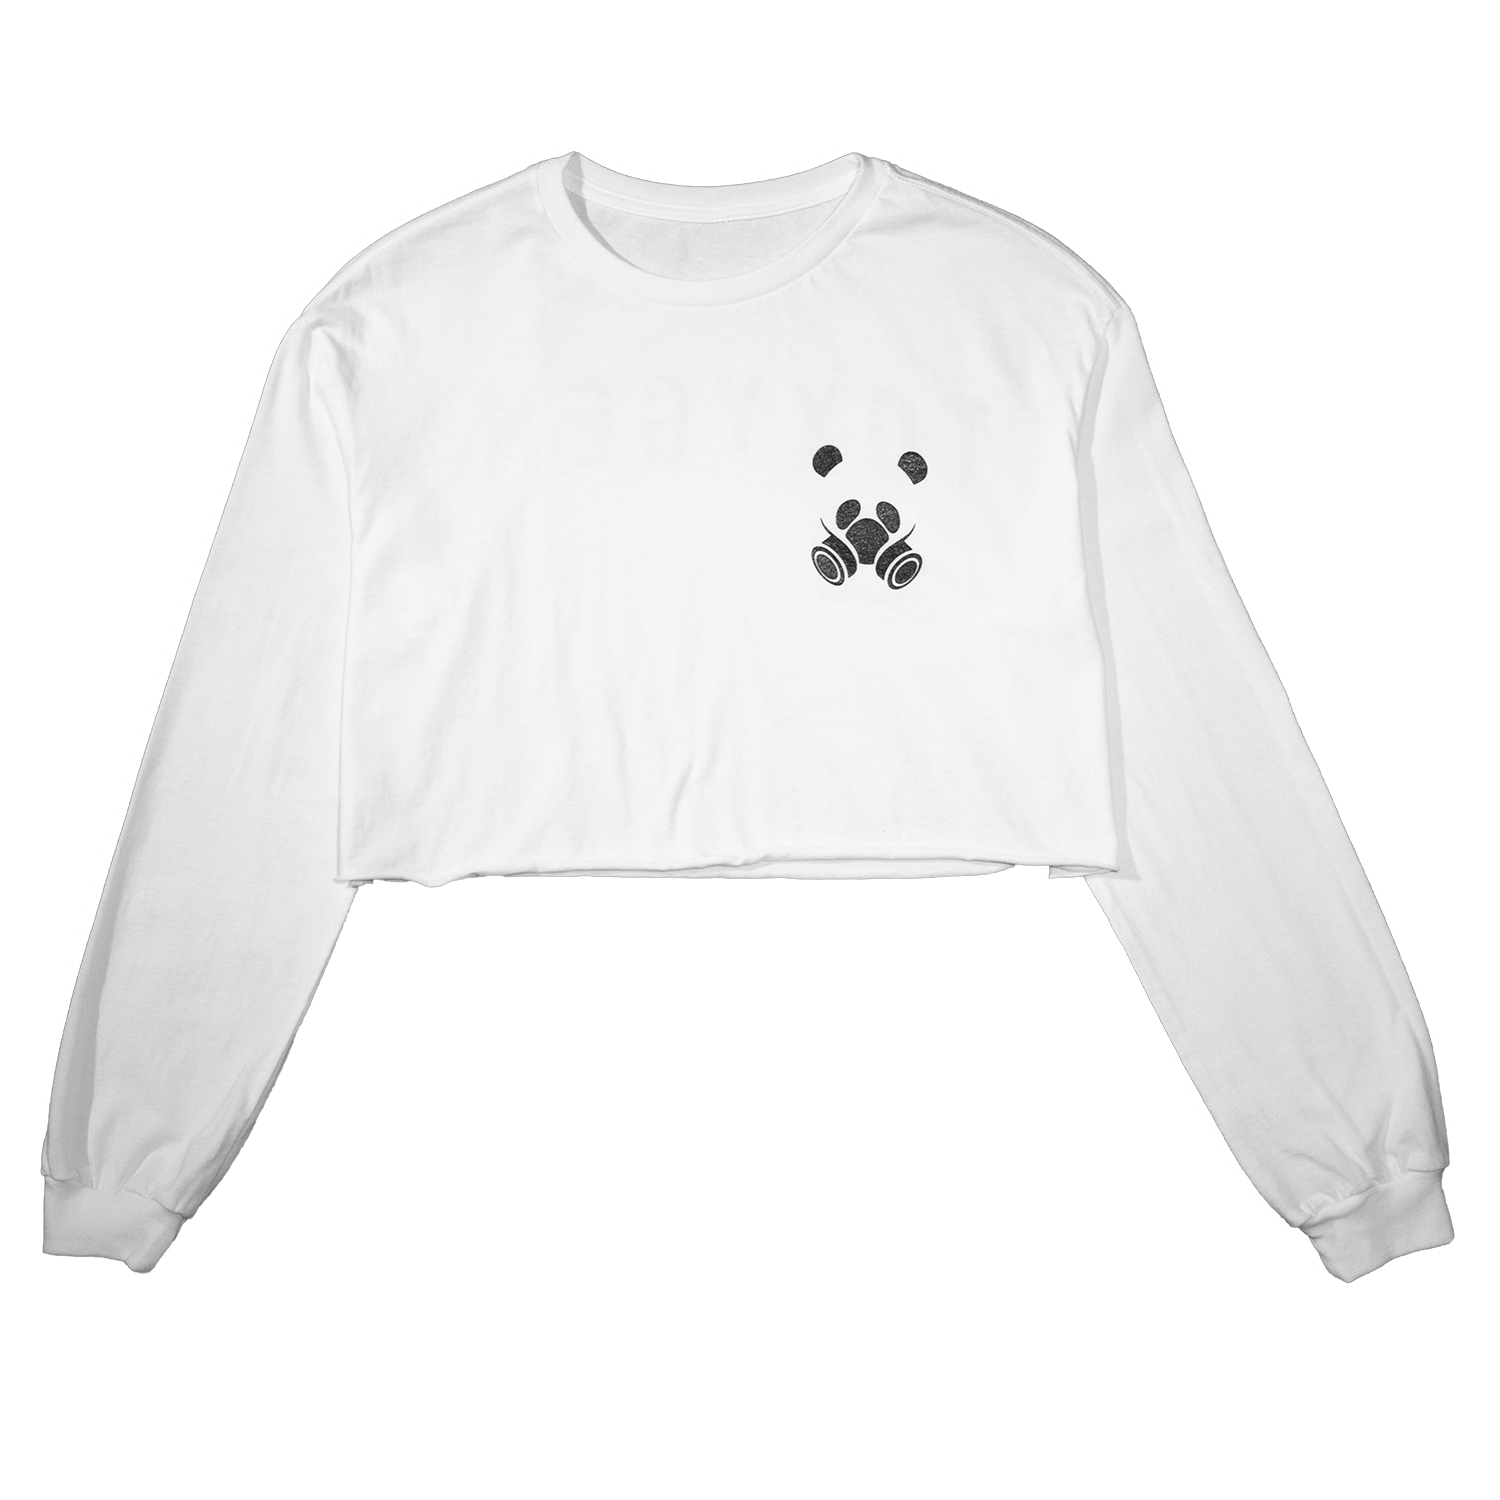 White Toxygen Crop Top